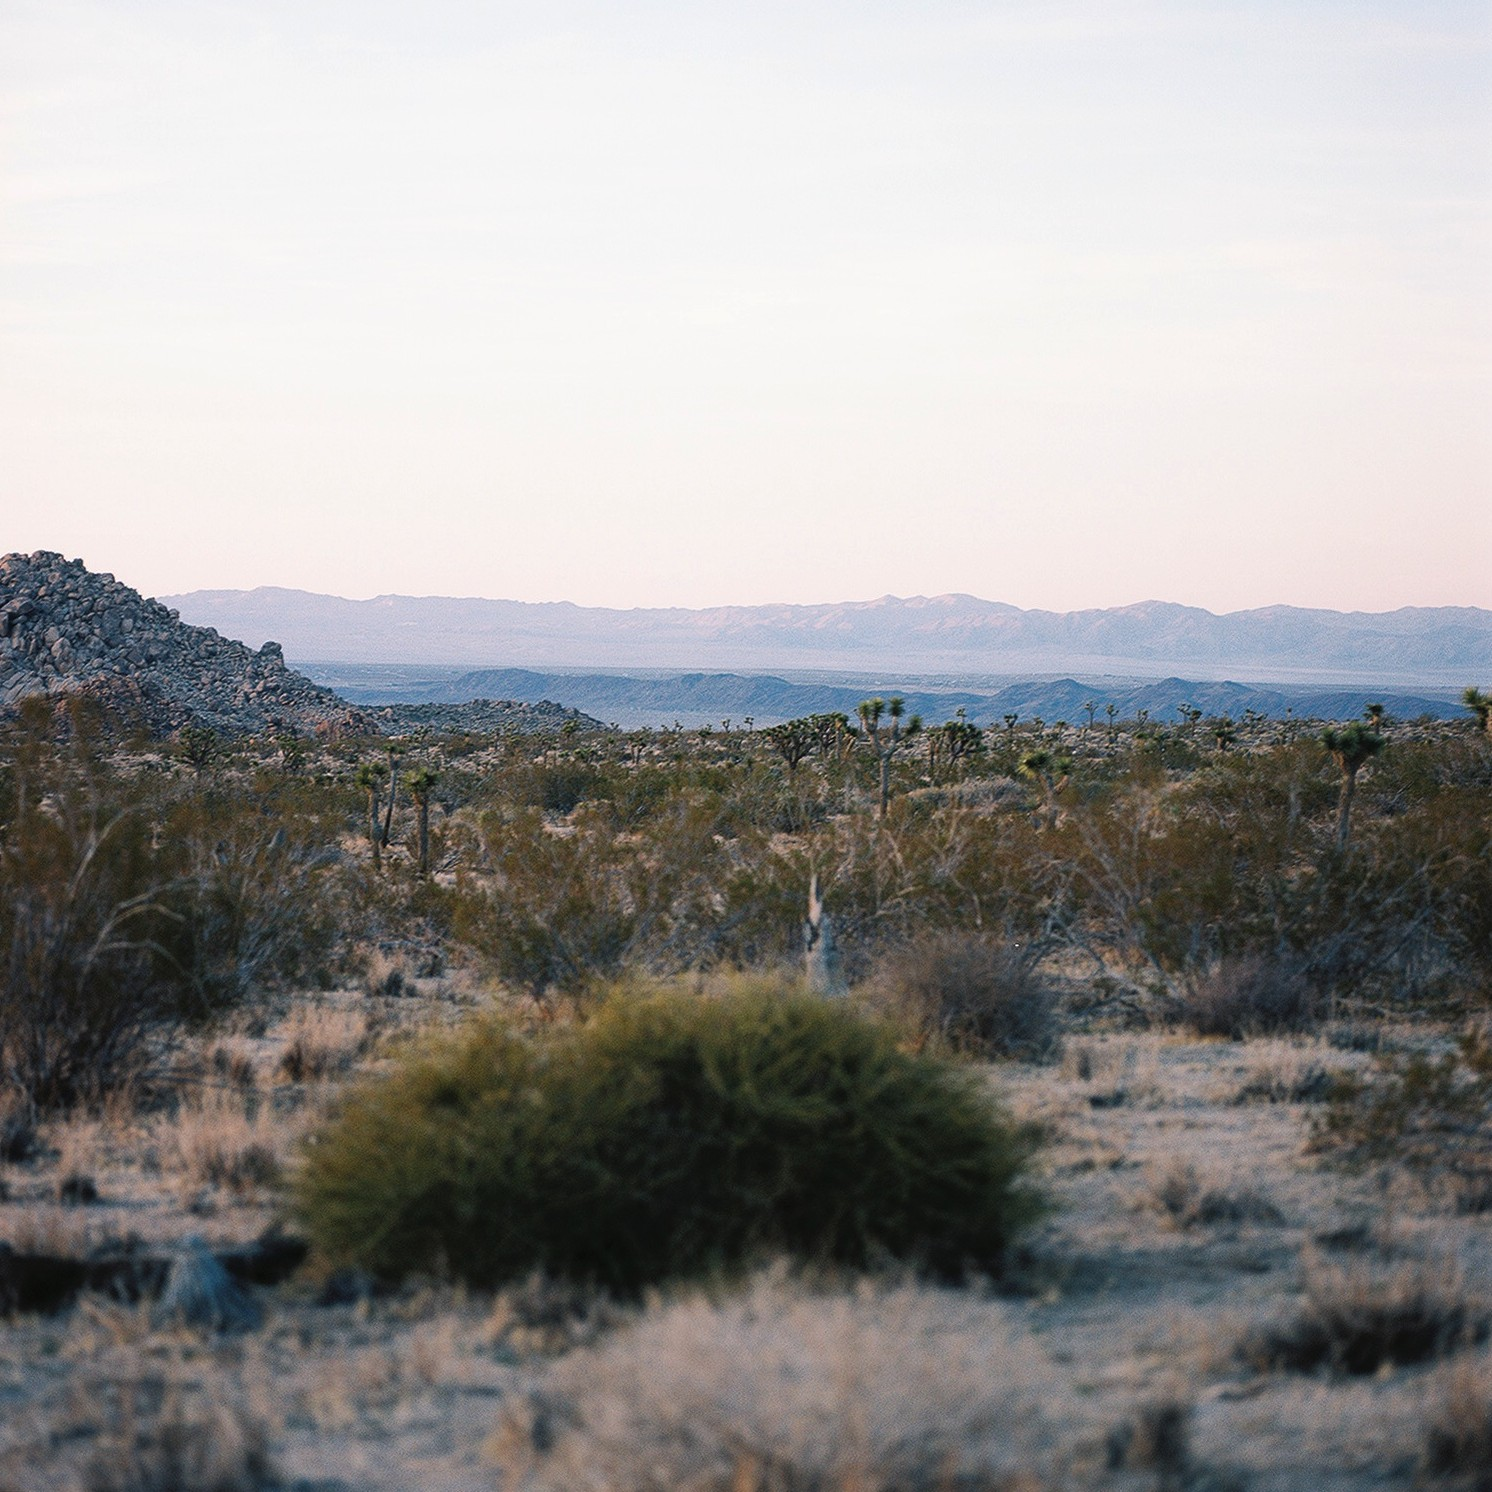 hasselblad medium format film travel photography of Joshua Tree dessert by Jessica Schilling